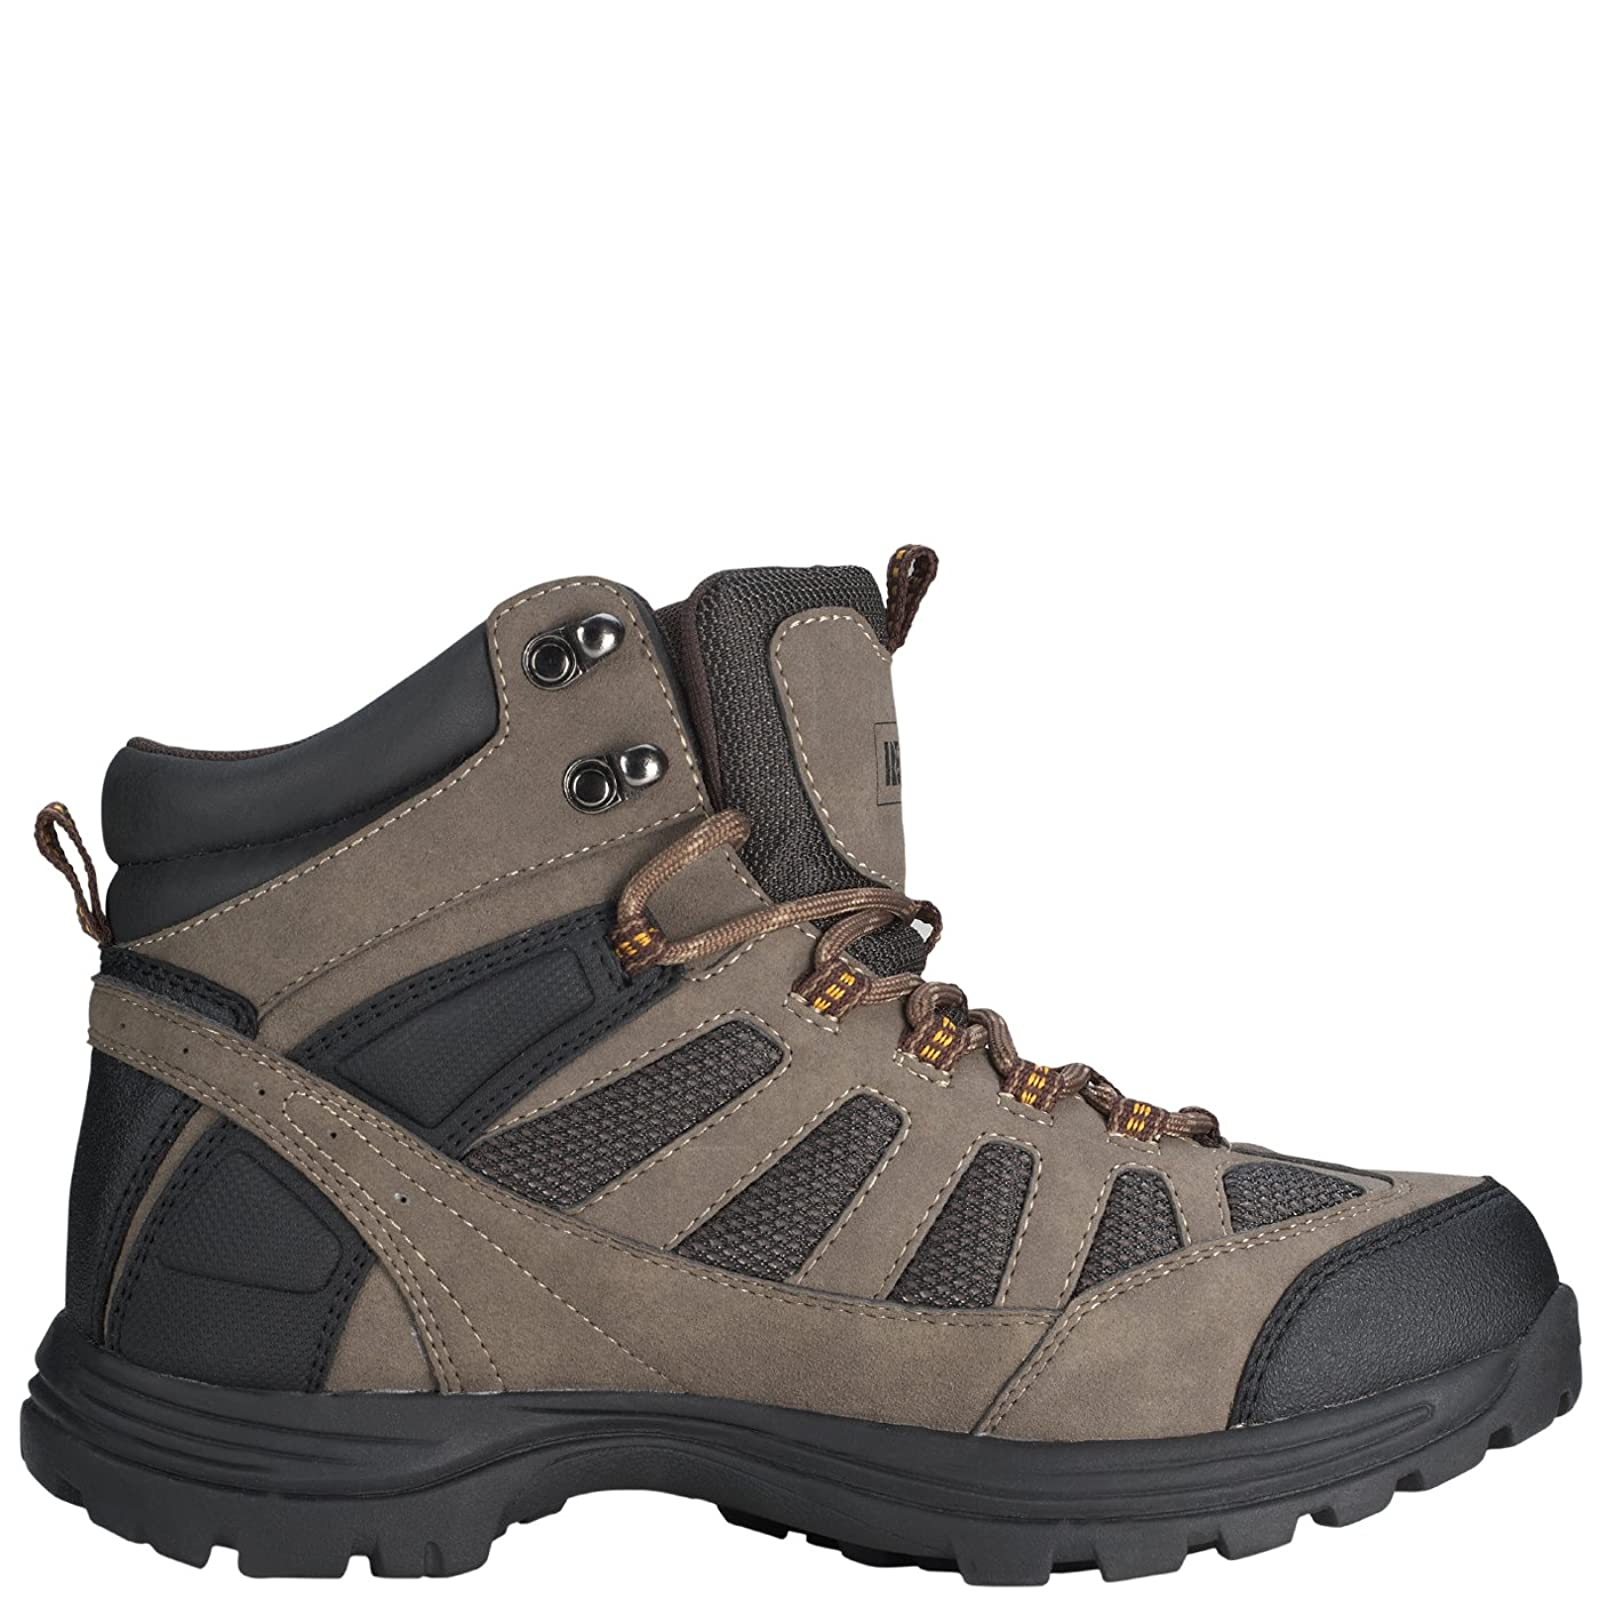 Rugged Outback Men's Ridge Mid Hiker Small - 1